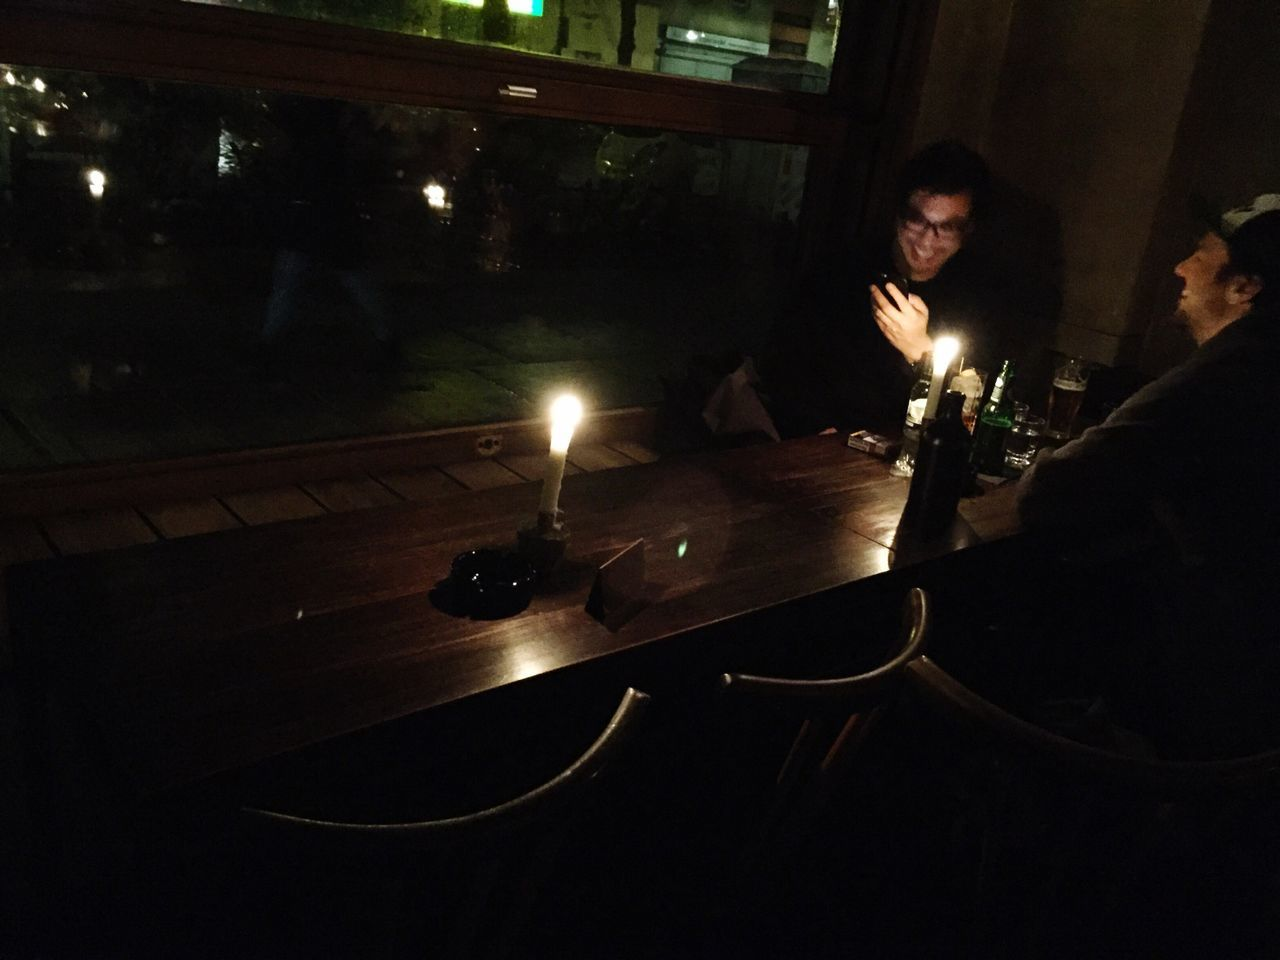 Candle Night Indoors  Real People Table Men Togetherness Drinking Beer Bar Two People Candlelight Wood - Material Relaxing